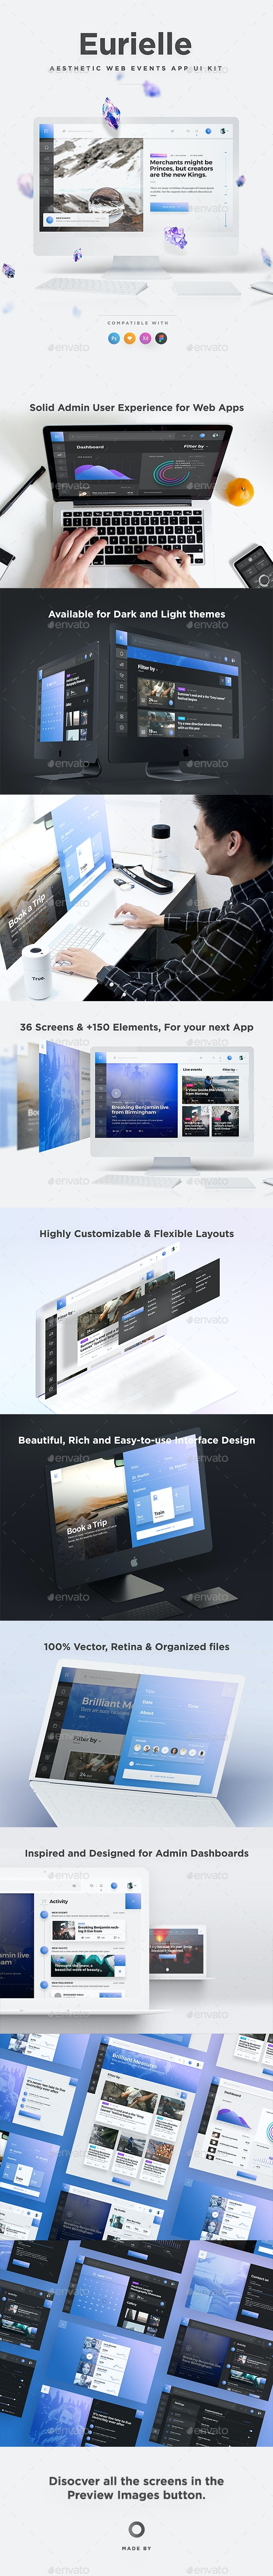 Eurielle Web - Aesthetic Events & Dashboard Web App UI Kit - User Interfaces Web Elements